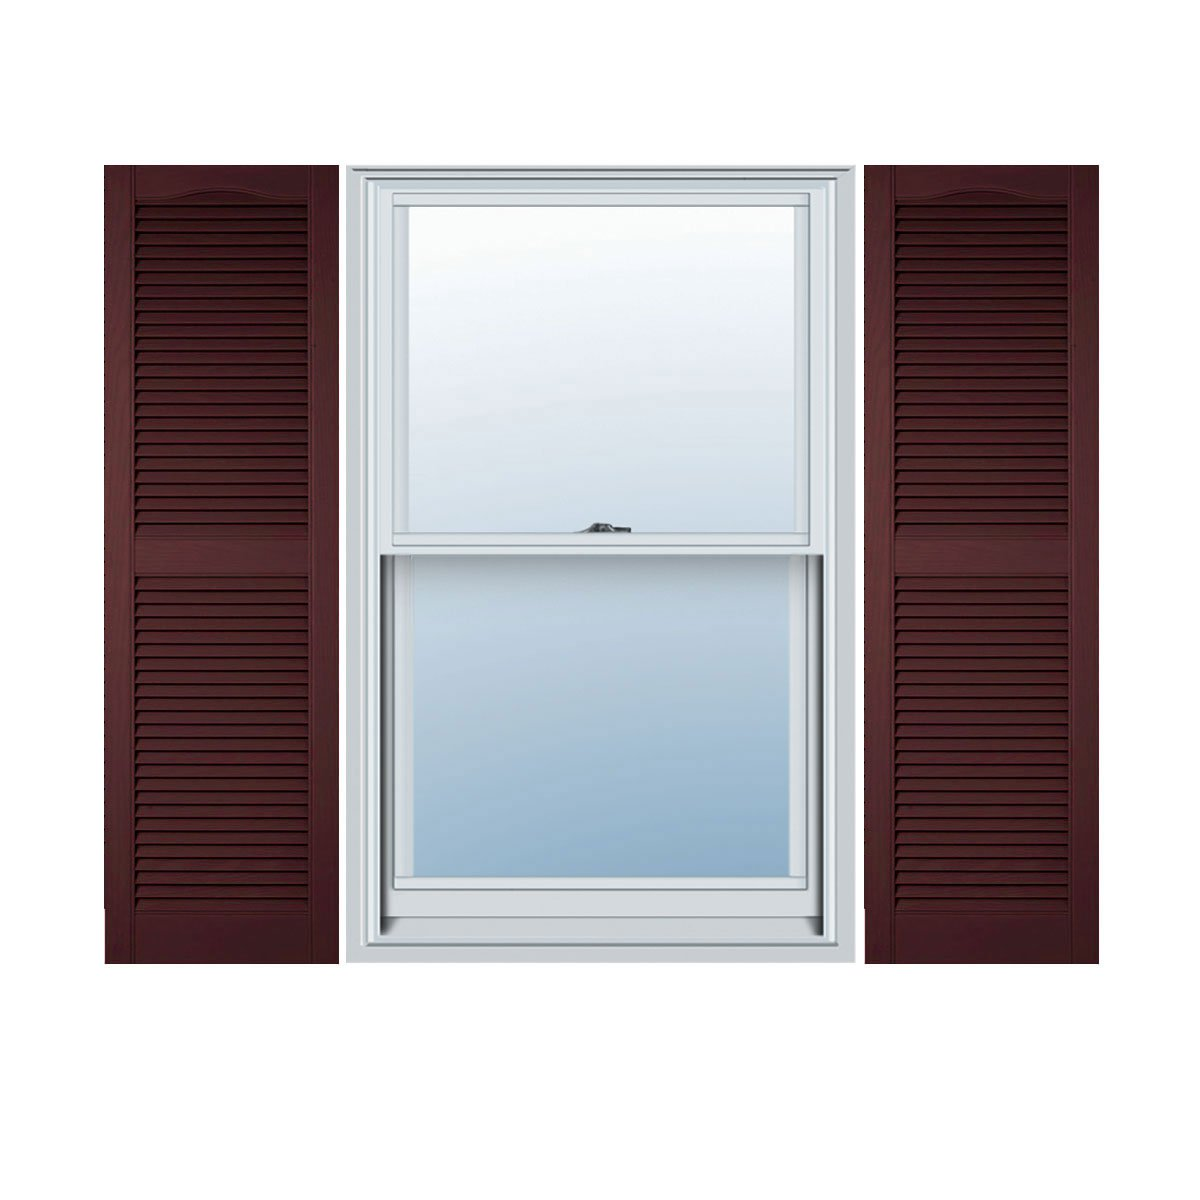 "Ekena Millwork LL1C12X03000BD Custom Cathedral Top Center Mullion, Open LouverShutter (Per Pair)12""W x 30""HBordeaux"